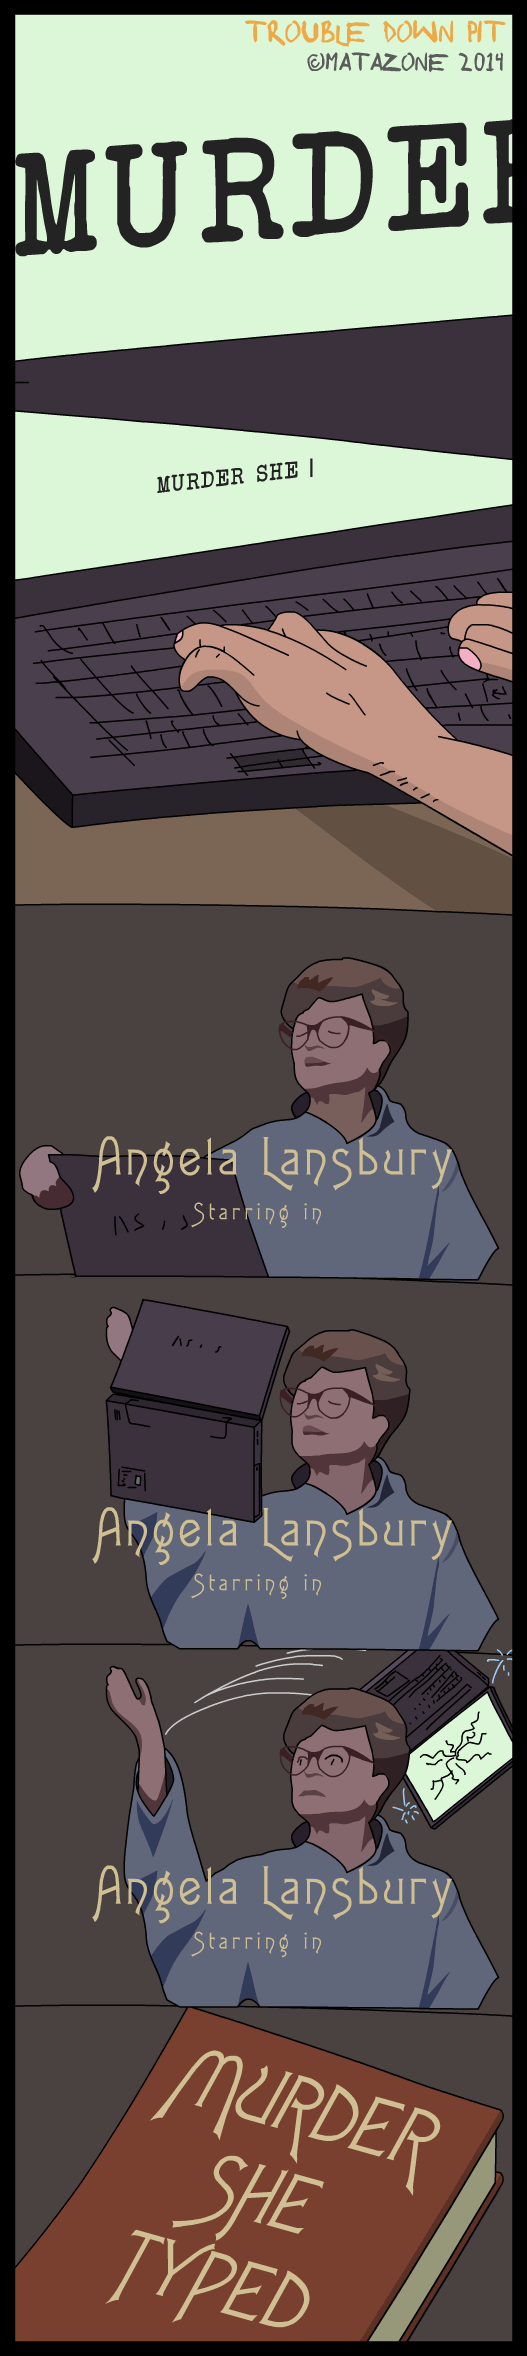 Angela Lansbury starring in…